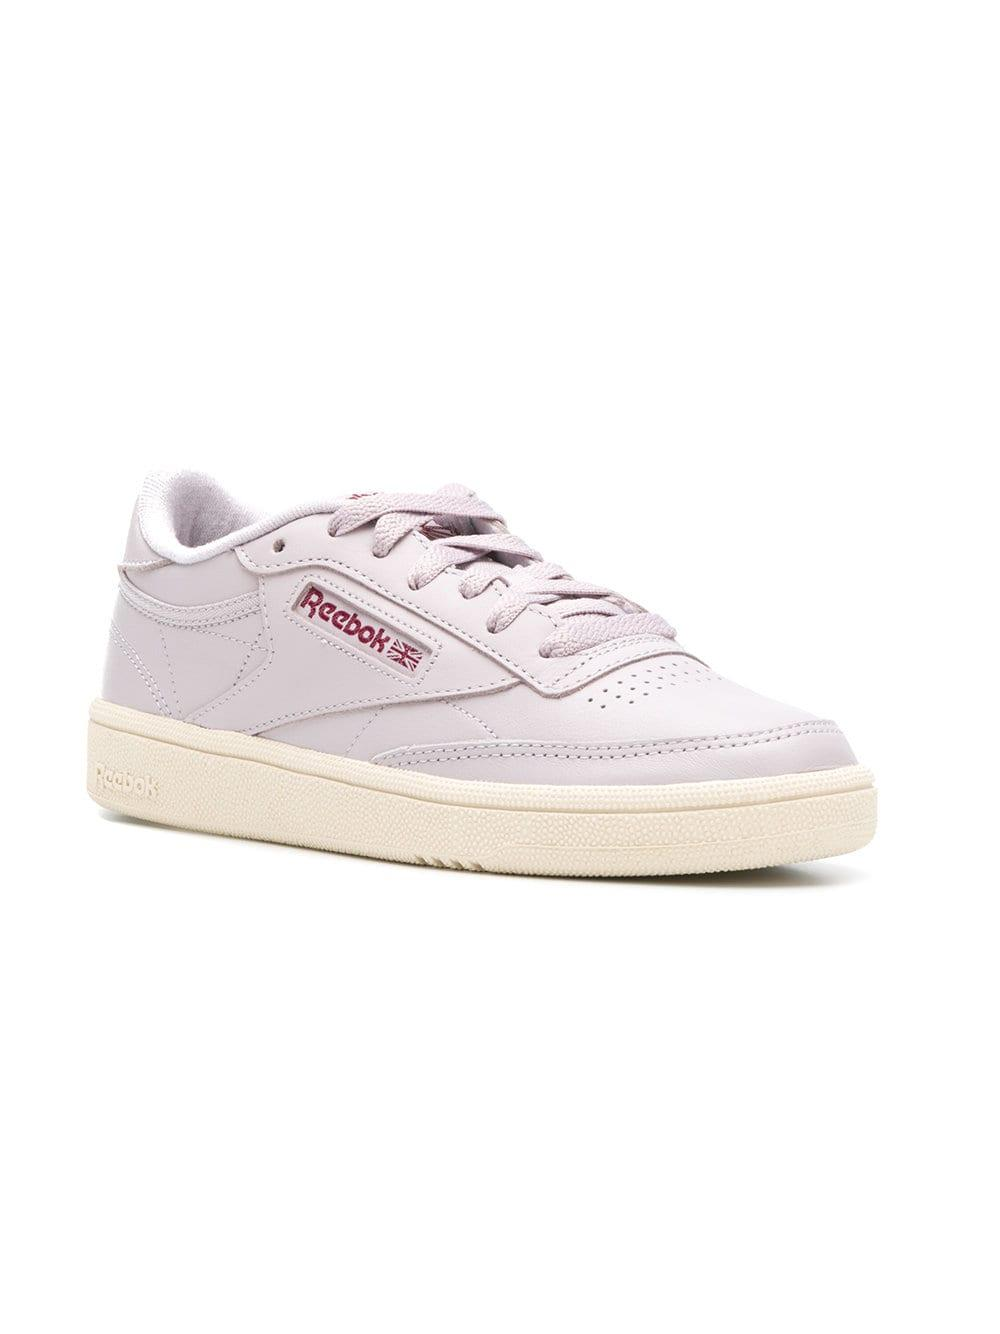 730cfa958d8 Lyst - Reebok Classic Low-top Sneakers in Pink